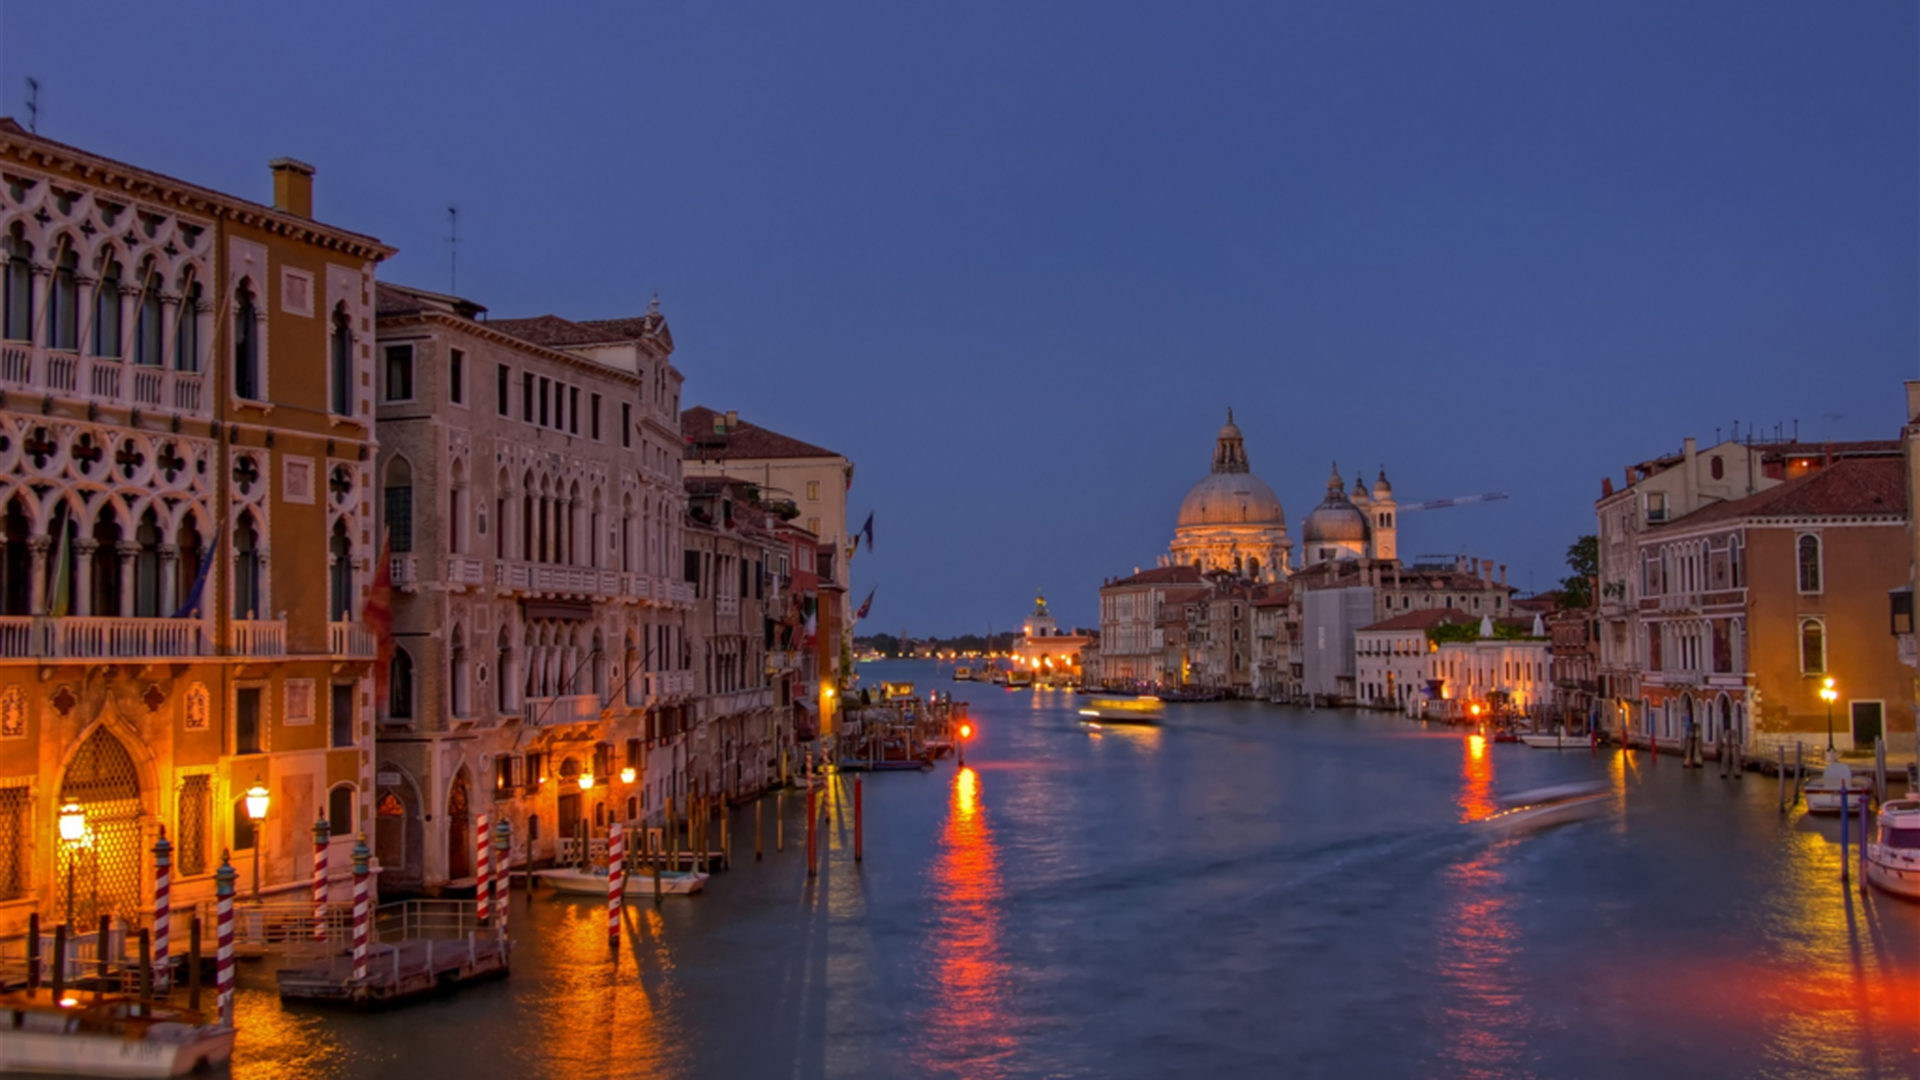 Night View Grand Canal Venice Italy